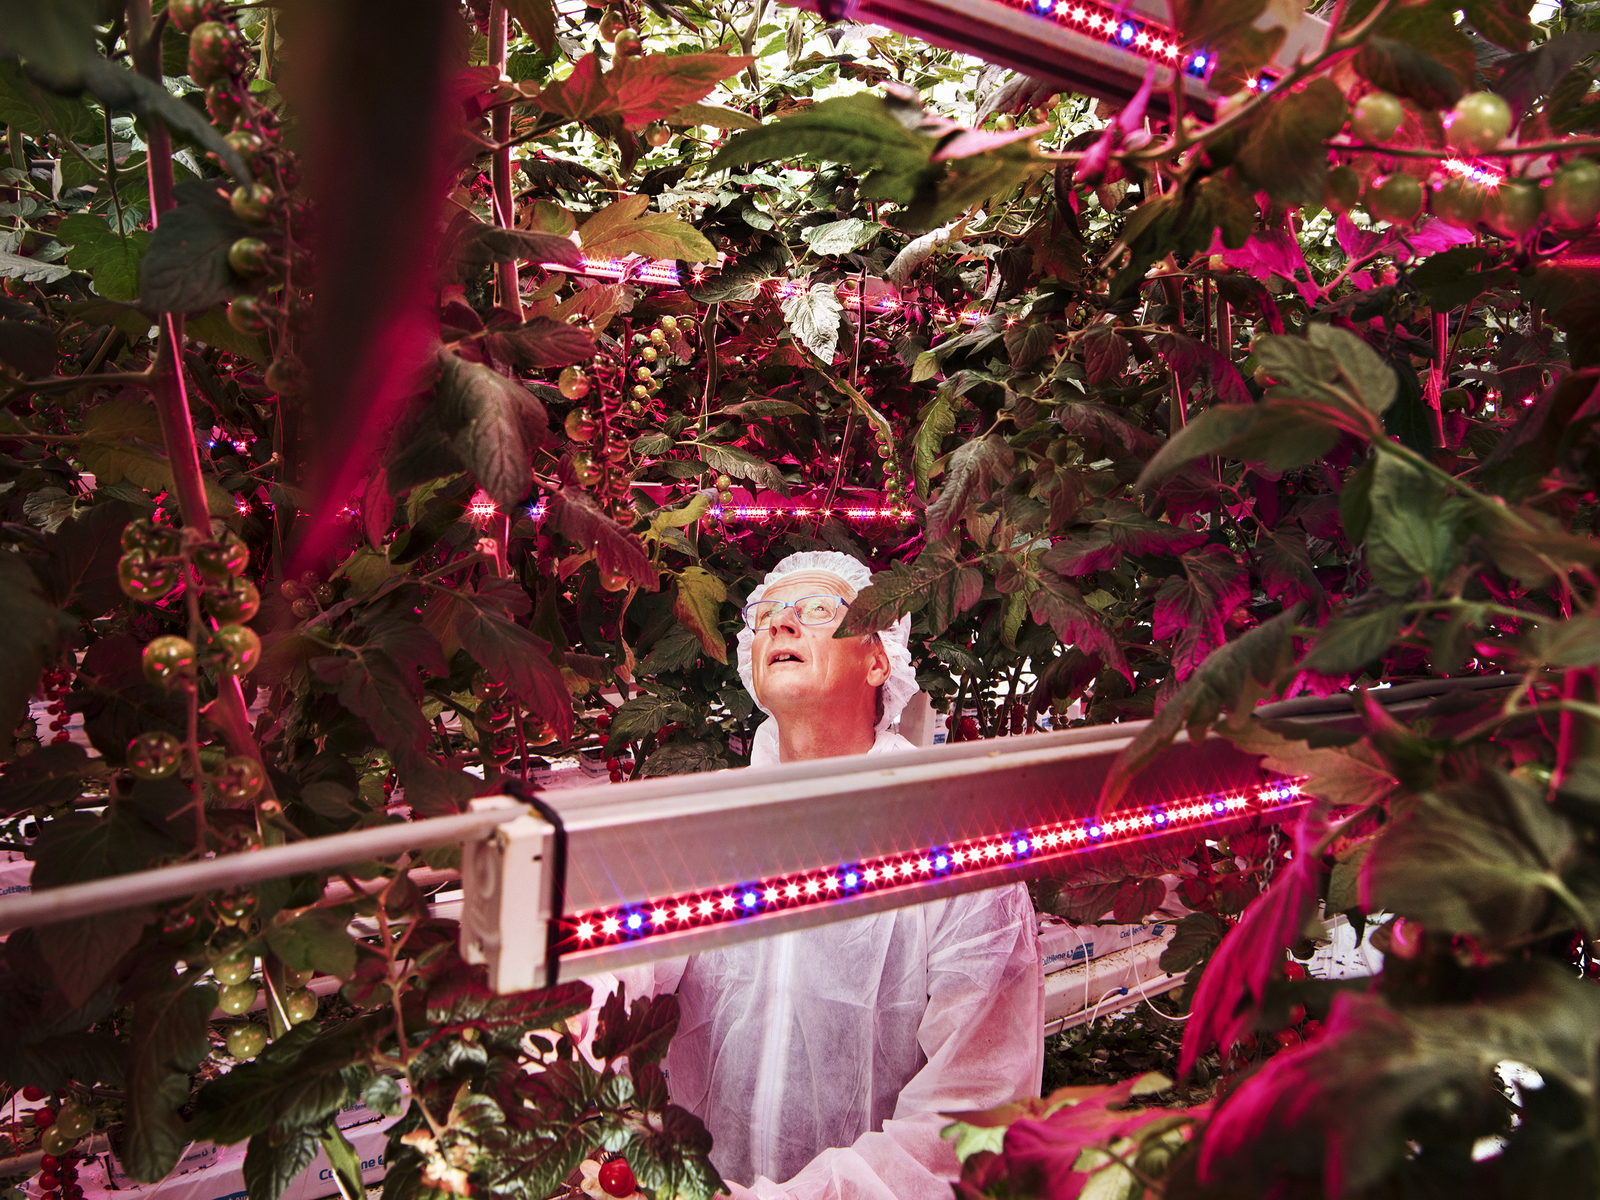 Inside this jungle of tomato plants illuminated by LED lighting Mr. Henk a leading world authority for growers inspects the plants. This picture is taken at Delphy, a research and development centre in the Netherlands where academia and the private sector join together for experimental research. How the future of sustainable farming could look like ? How the world is going to front the hunger crisis in the next decades ? Those questions brought me for @natgeo in the Netherlands to document this small country that has become an agricultural giant and it propose the most advanced high tech agro farming solutions to grow more with less.